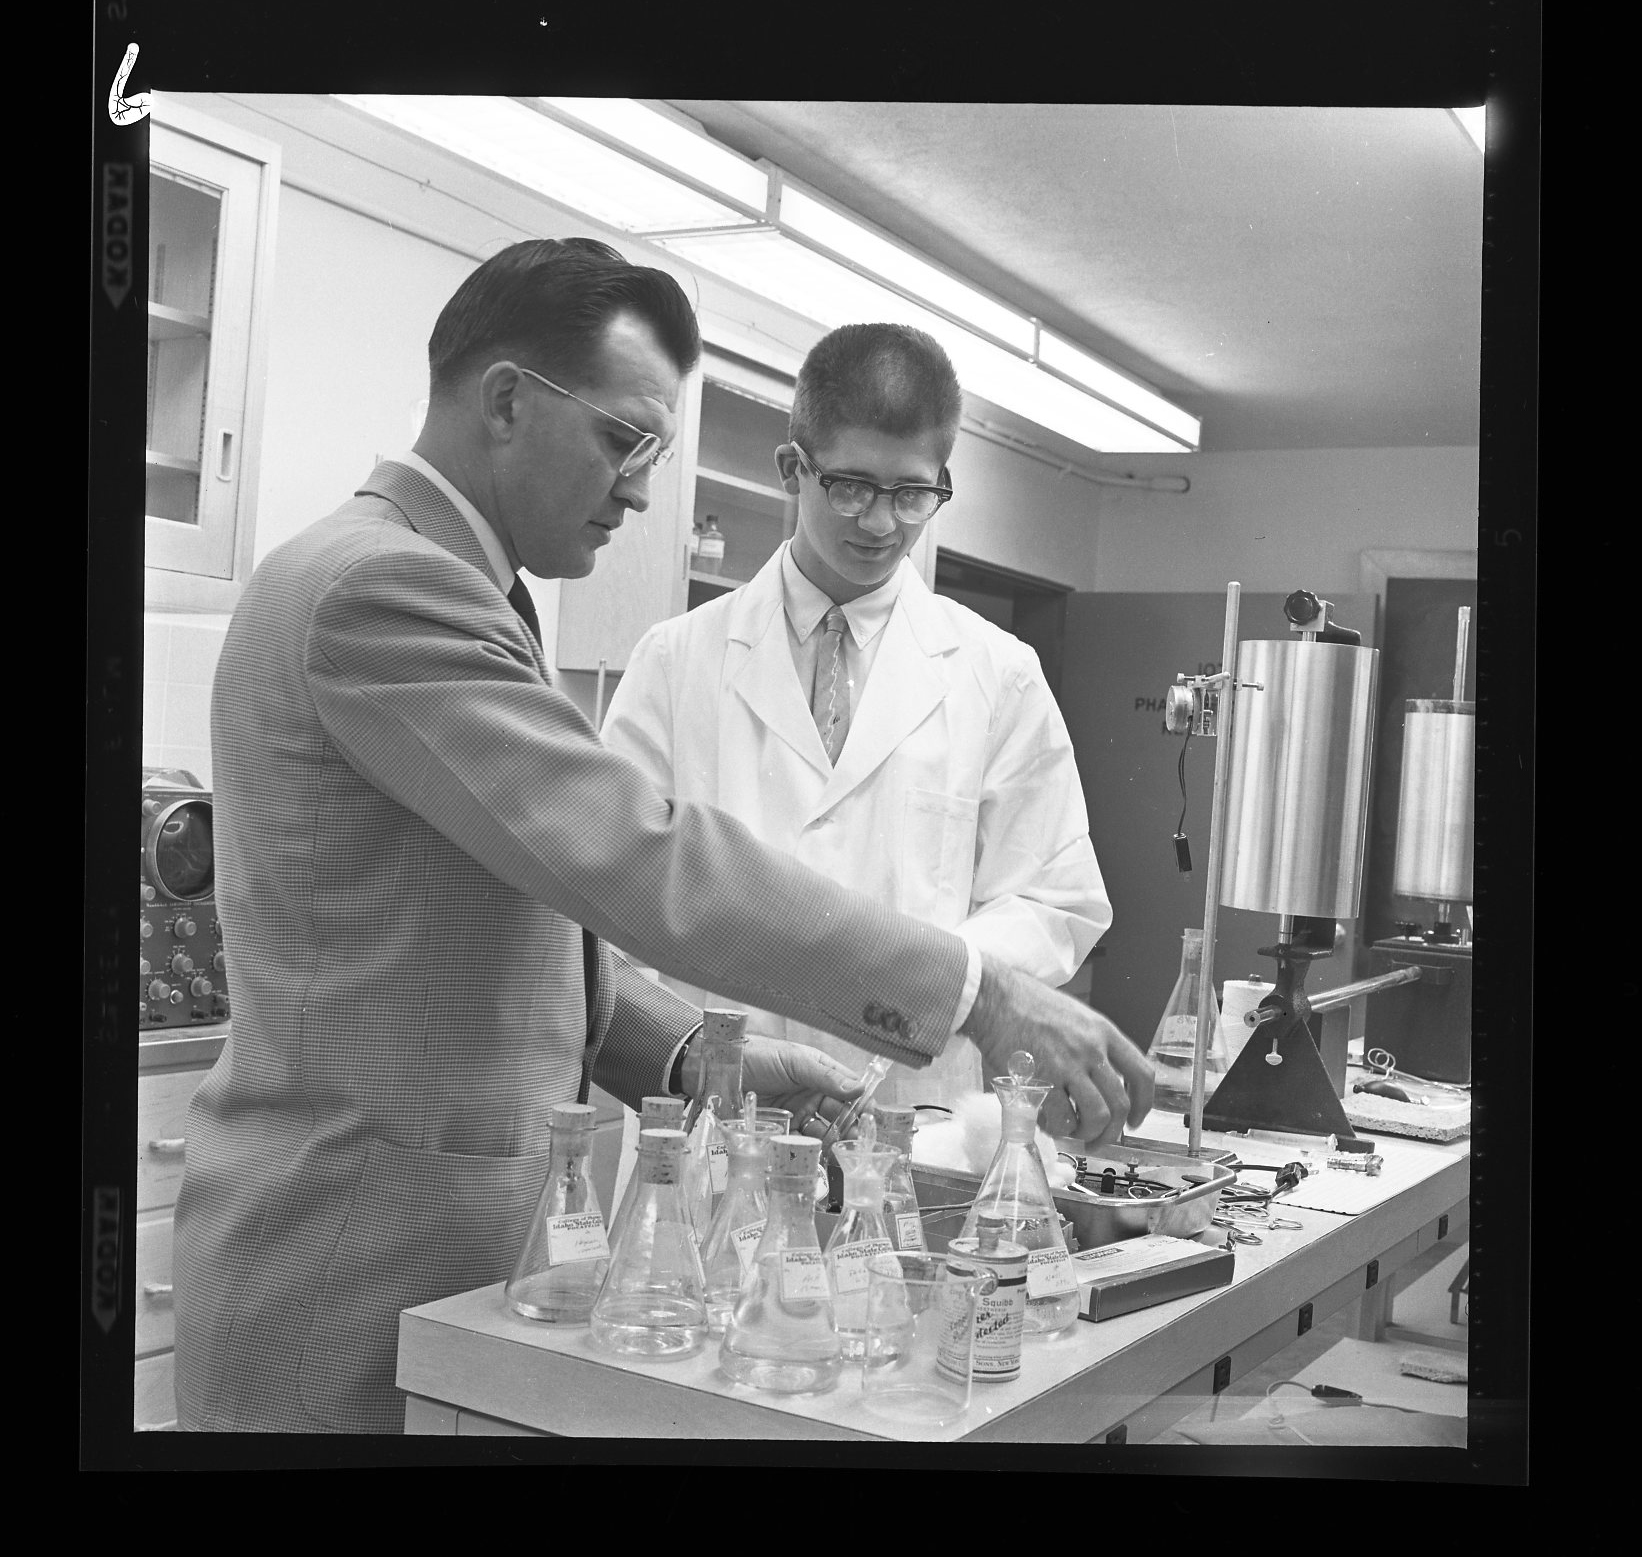 Historical photo with pharmacy dean and student in lab